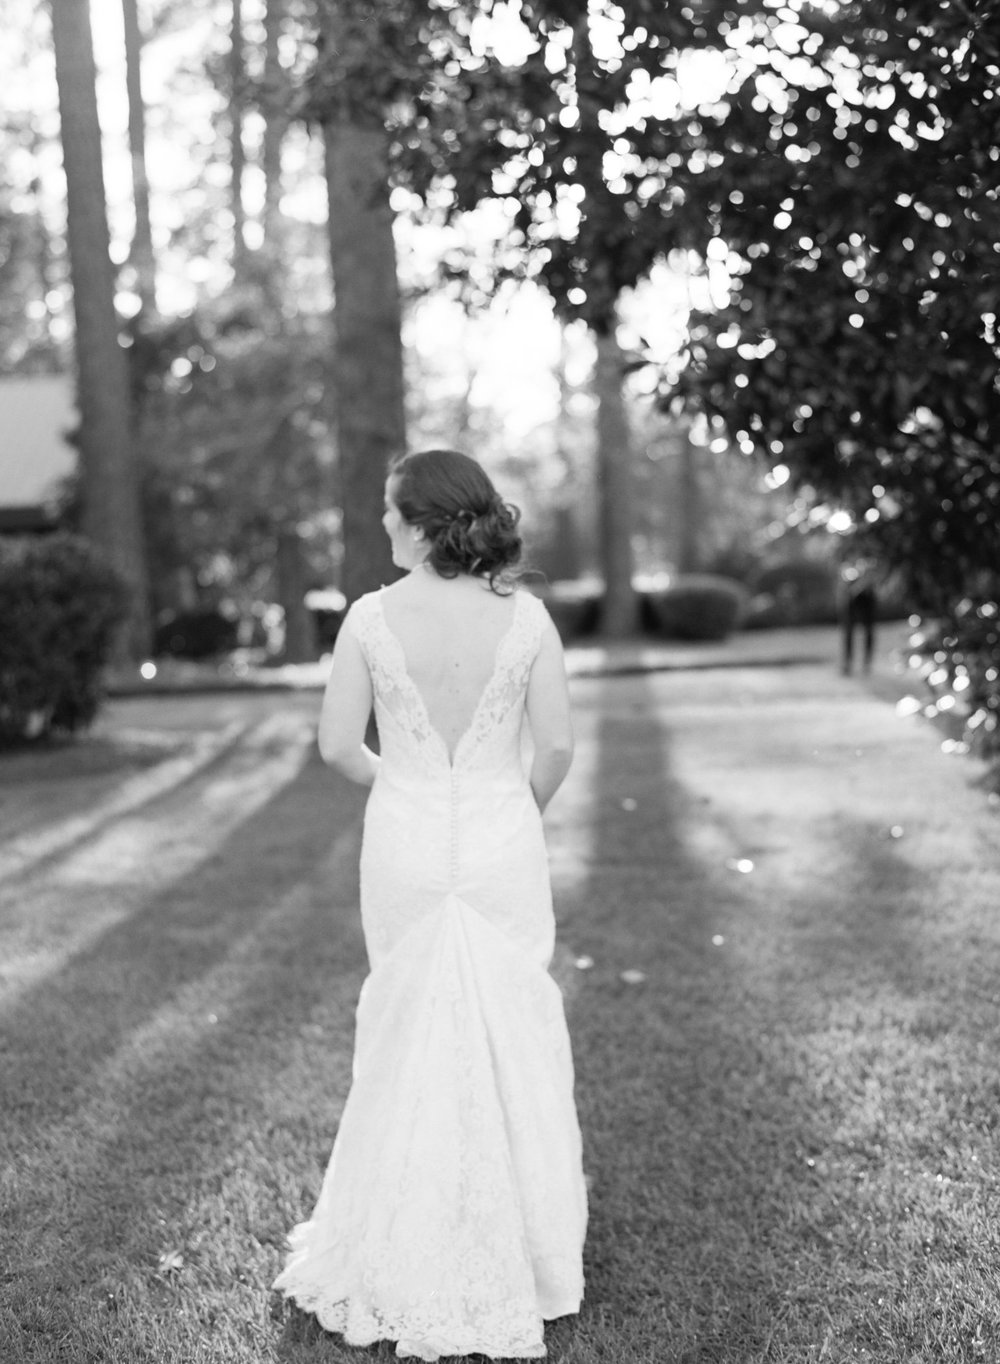 ecila farm wedding albany georgia wedding photographer shannon griffin photography-62.jpg